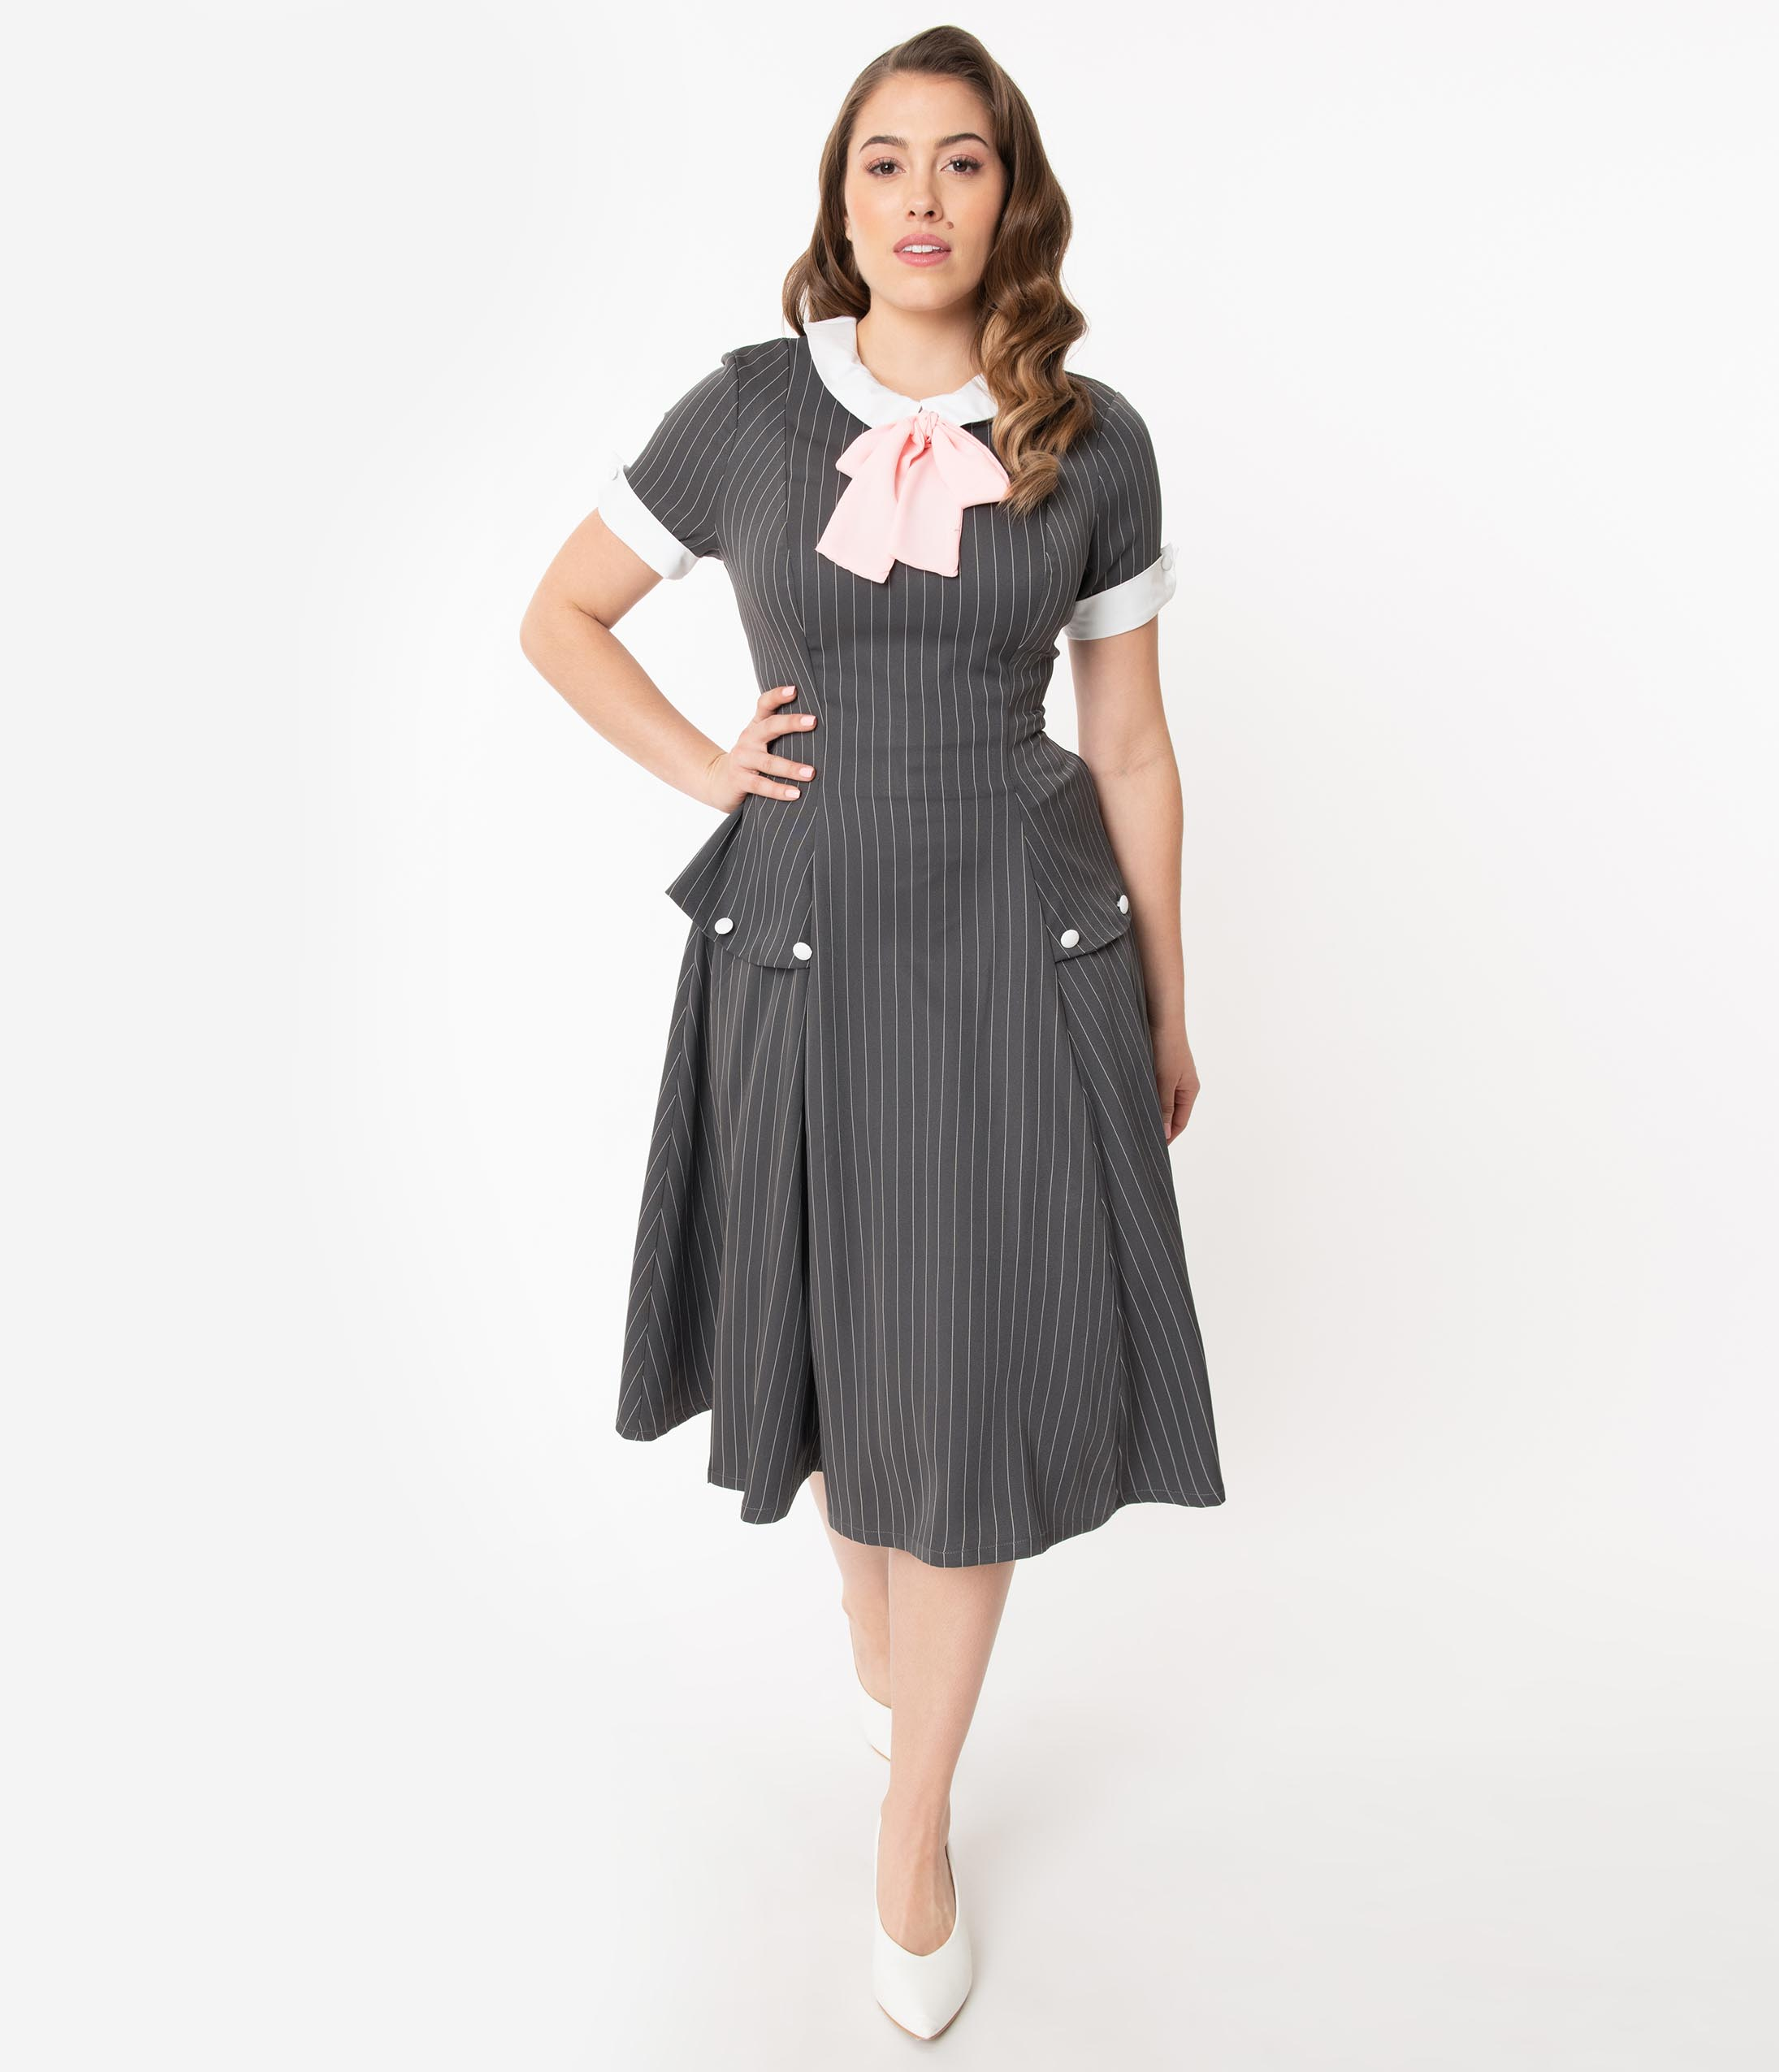 1940s Fashion Advice for Tall Women Unique Vintage 1940S Charcoal Pinstripe Manchester Swing Dress $78.00 AT vintagedancer.com